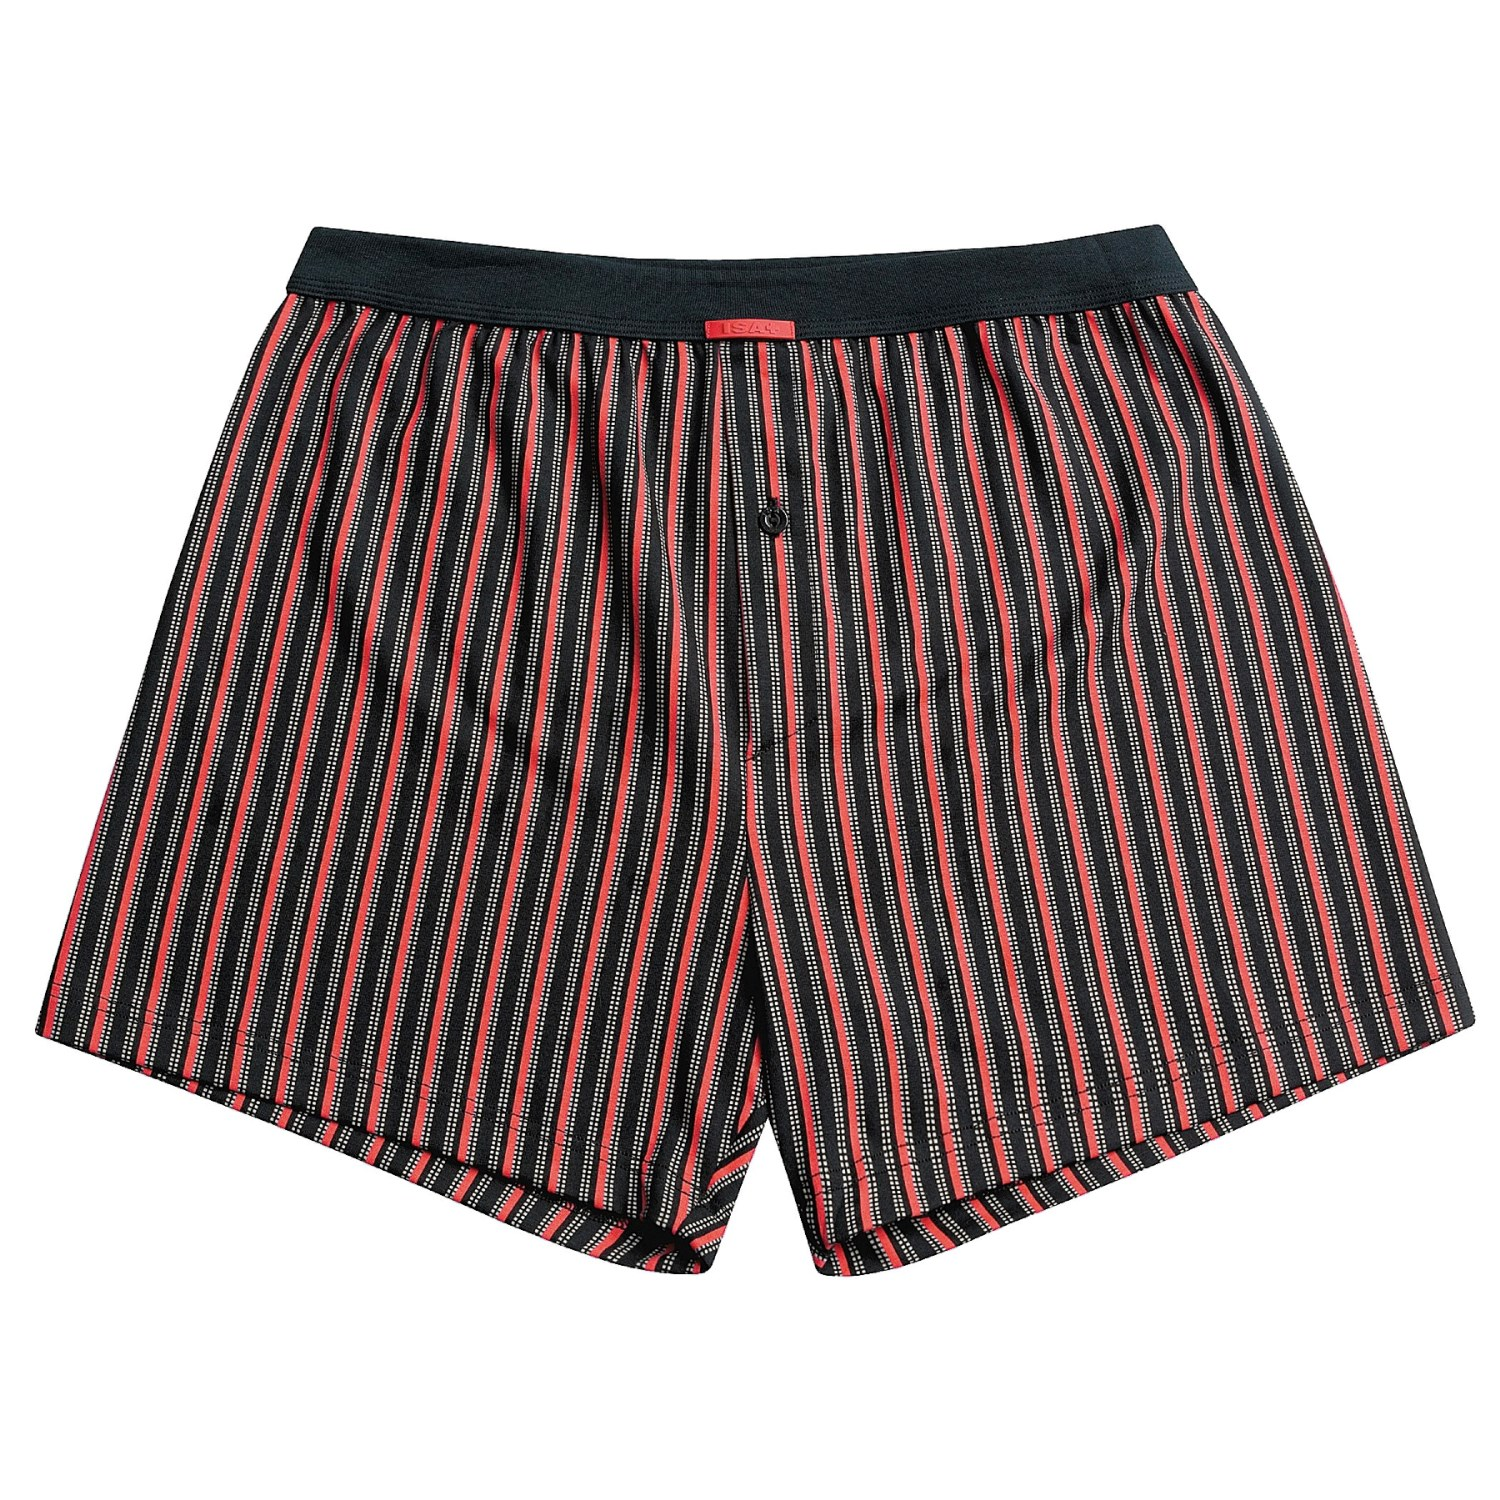 Calvin Klein boxer shorts for men are designed with a form-fitting slim fit that maximizes comfort and style. Our boxers are knit or woven with % comfortable, lightweight cotton and come in solid colors and in graphic patterns.